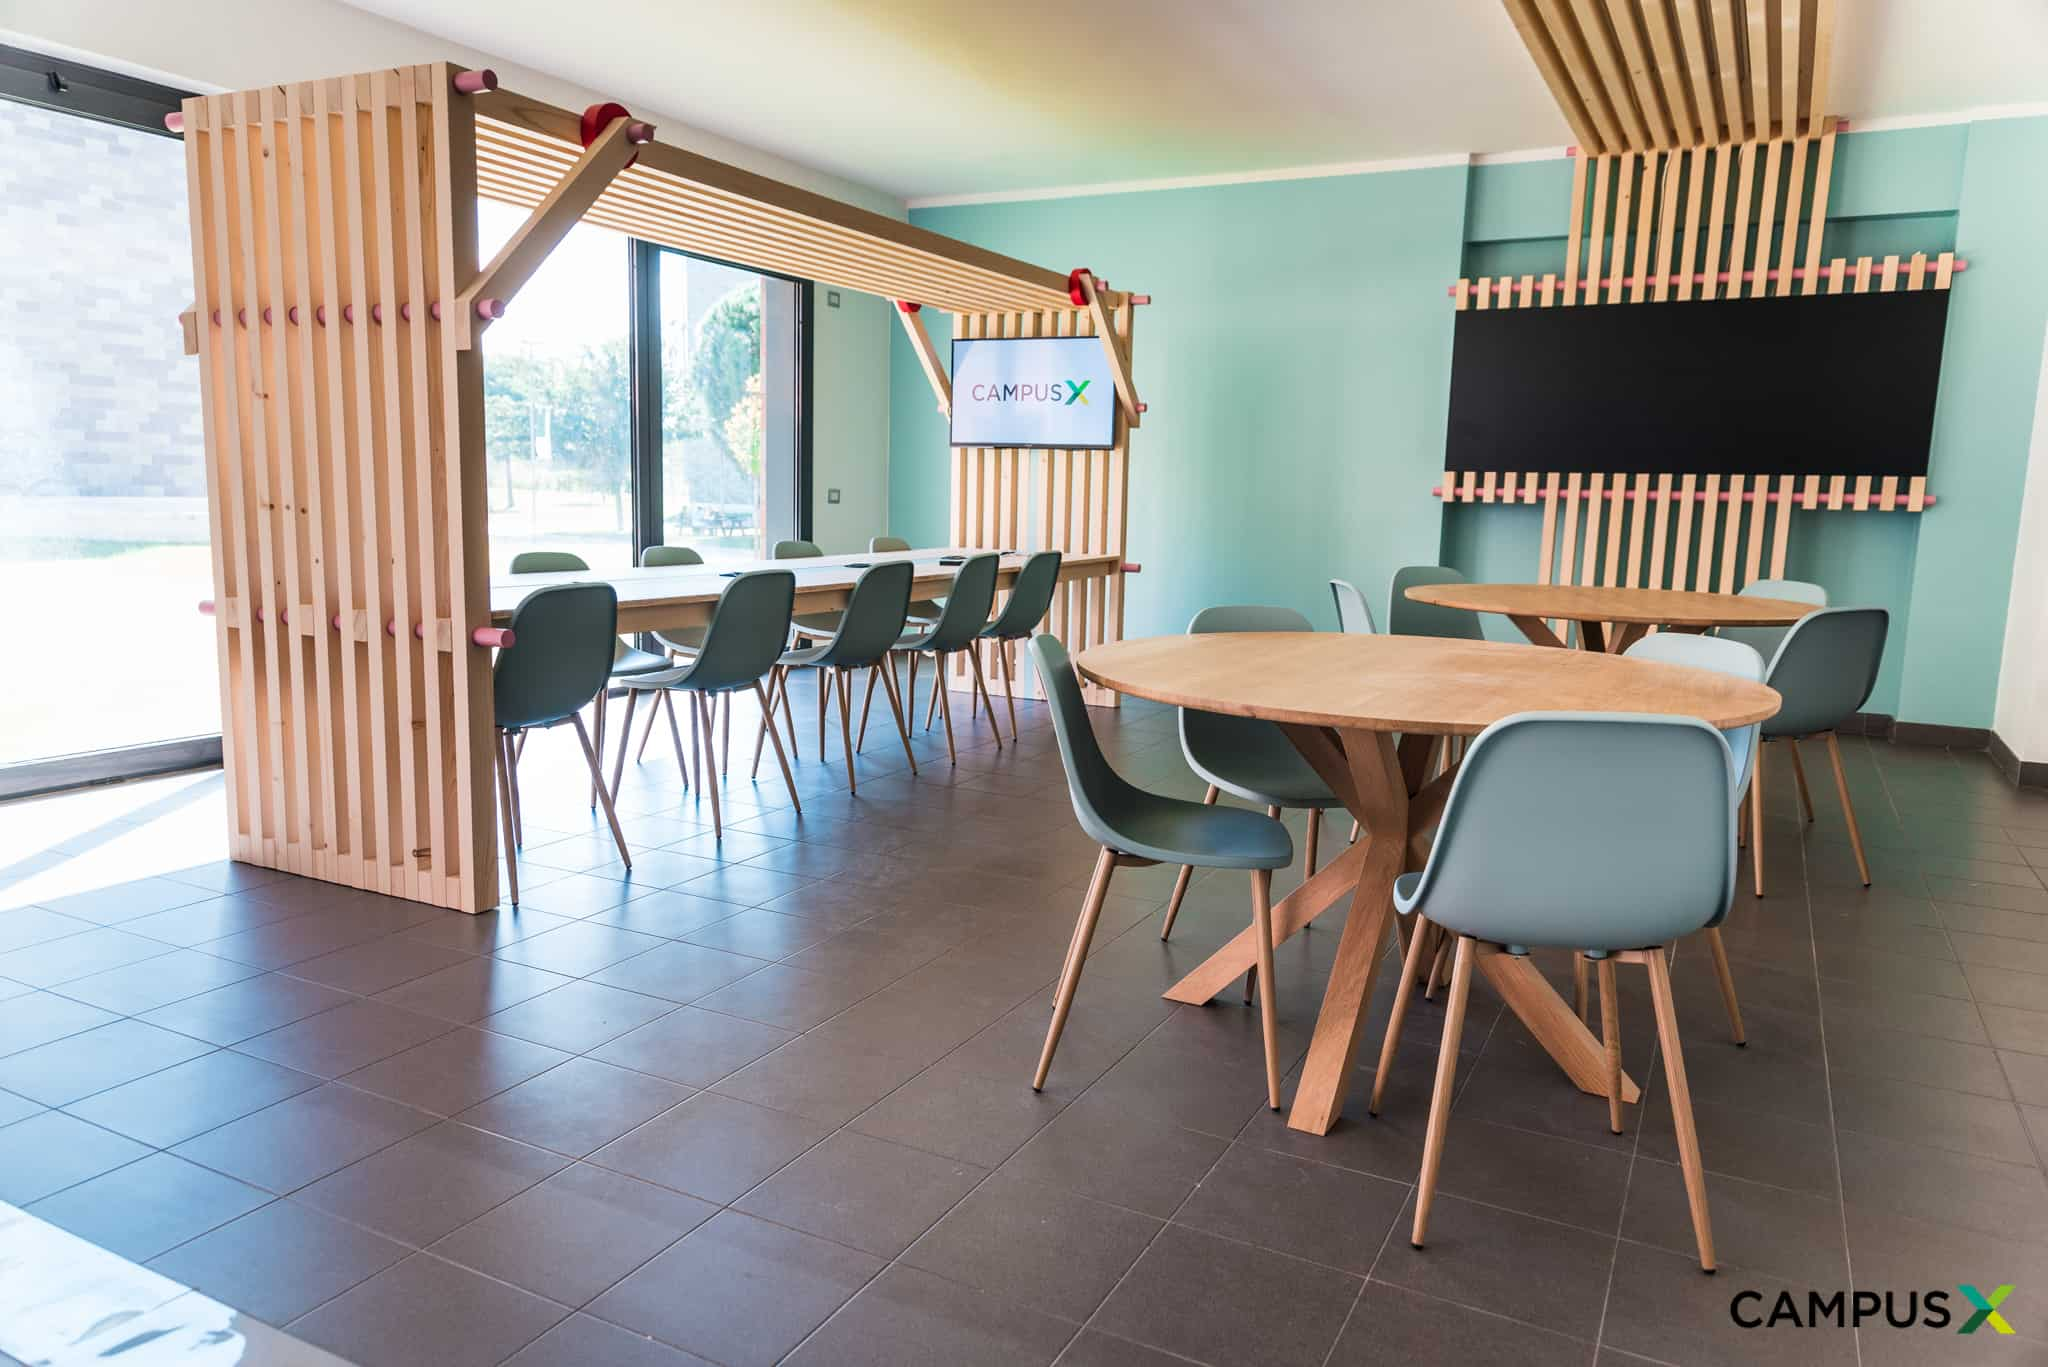 Coworking areas: new multidimensional work spaces